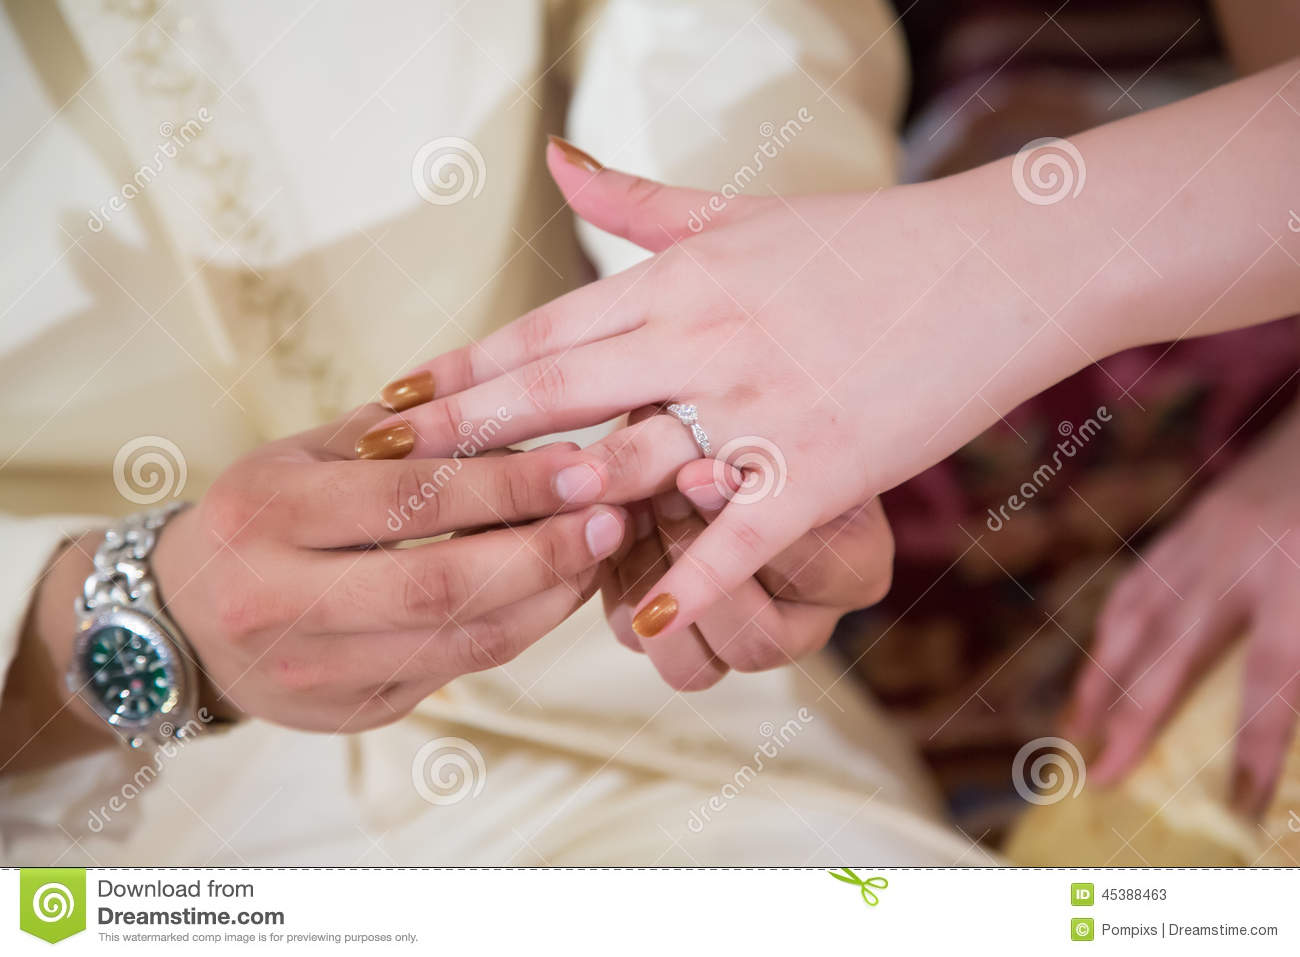 The Groom Put The Wedding Ring On His Bride Stock Image - Image of ...